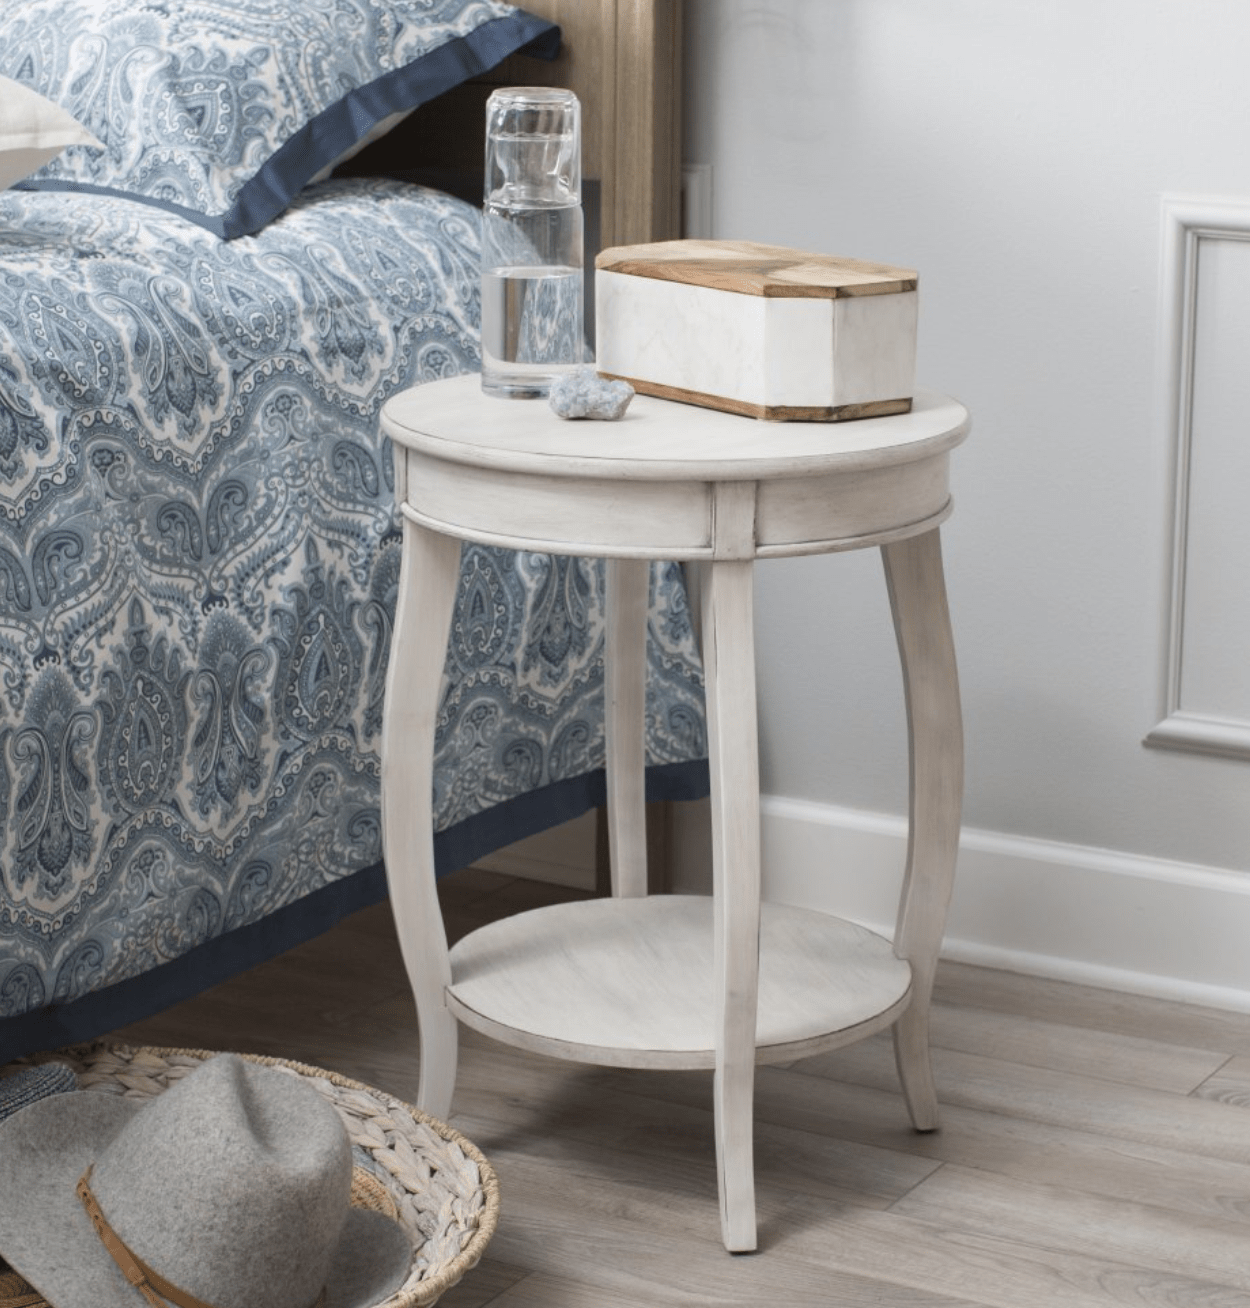 lovely small accent table for white round bedroom min compact with lower and upper shelf long console behind couch oversized chair wine storage cabinets black marble side metal